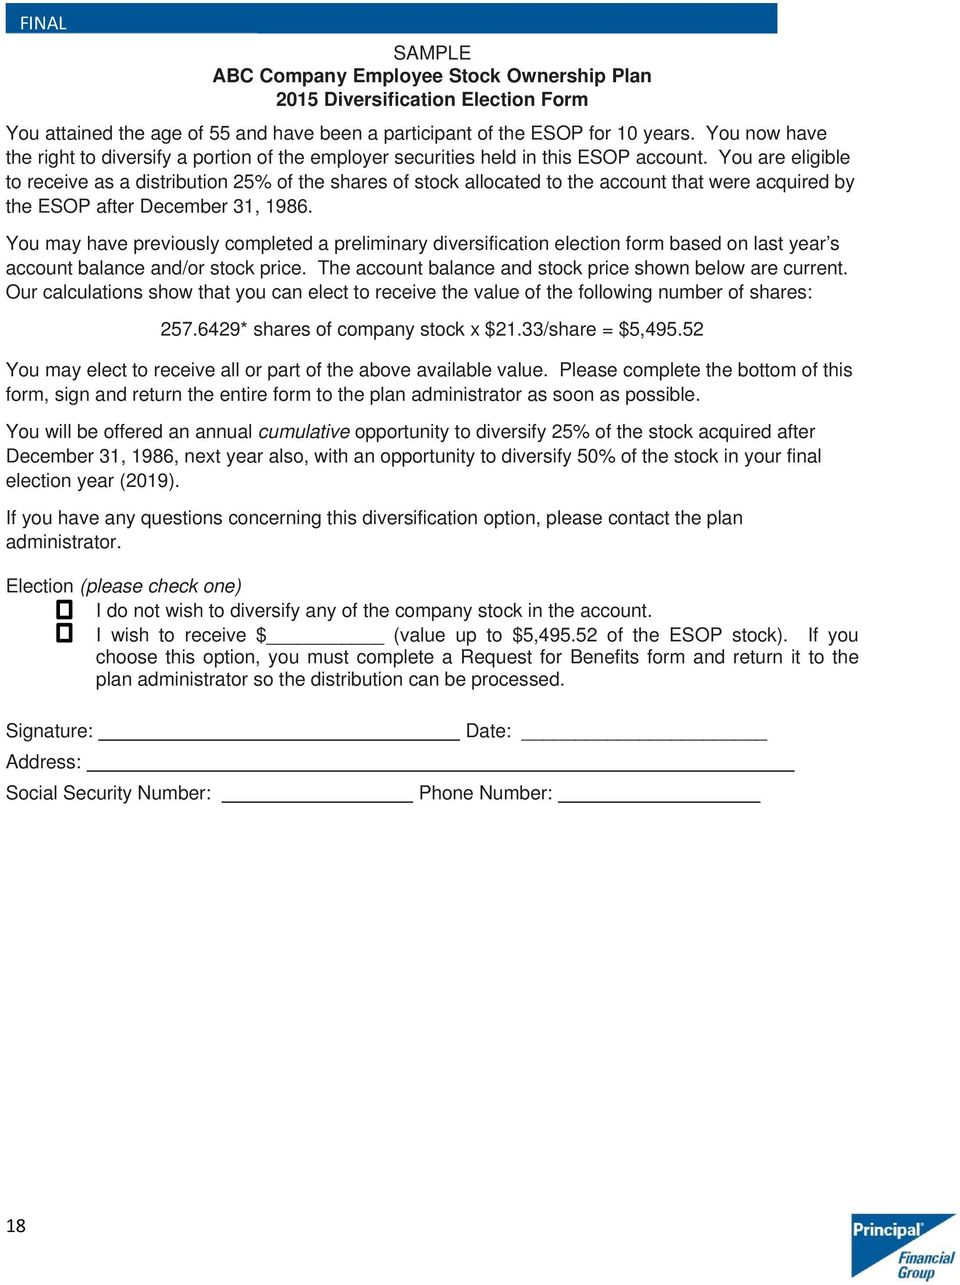 You are eligible to receive as a distribution 25% of the shares of stock allocated to the account that were acquired by the ESOP after December 31, 1986.